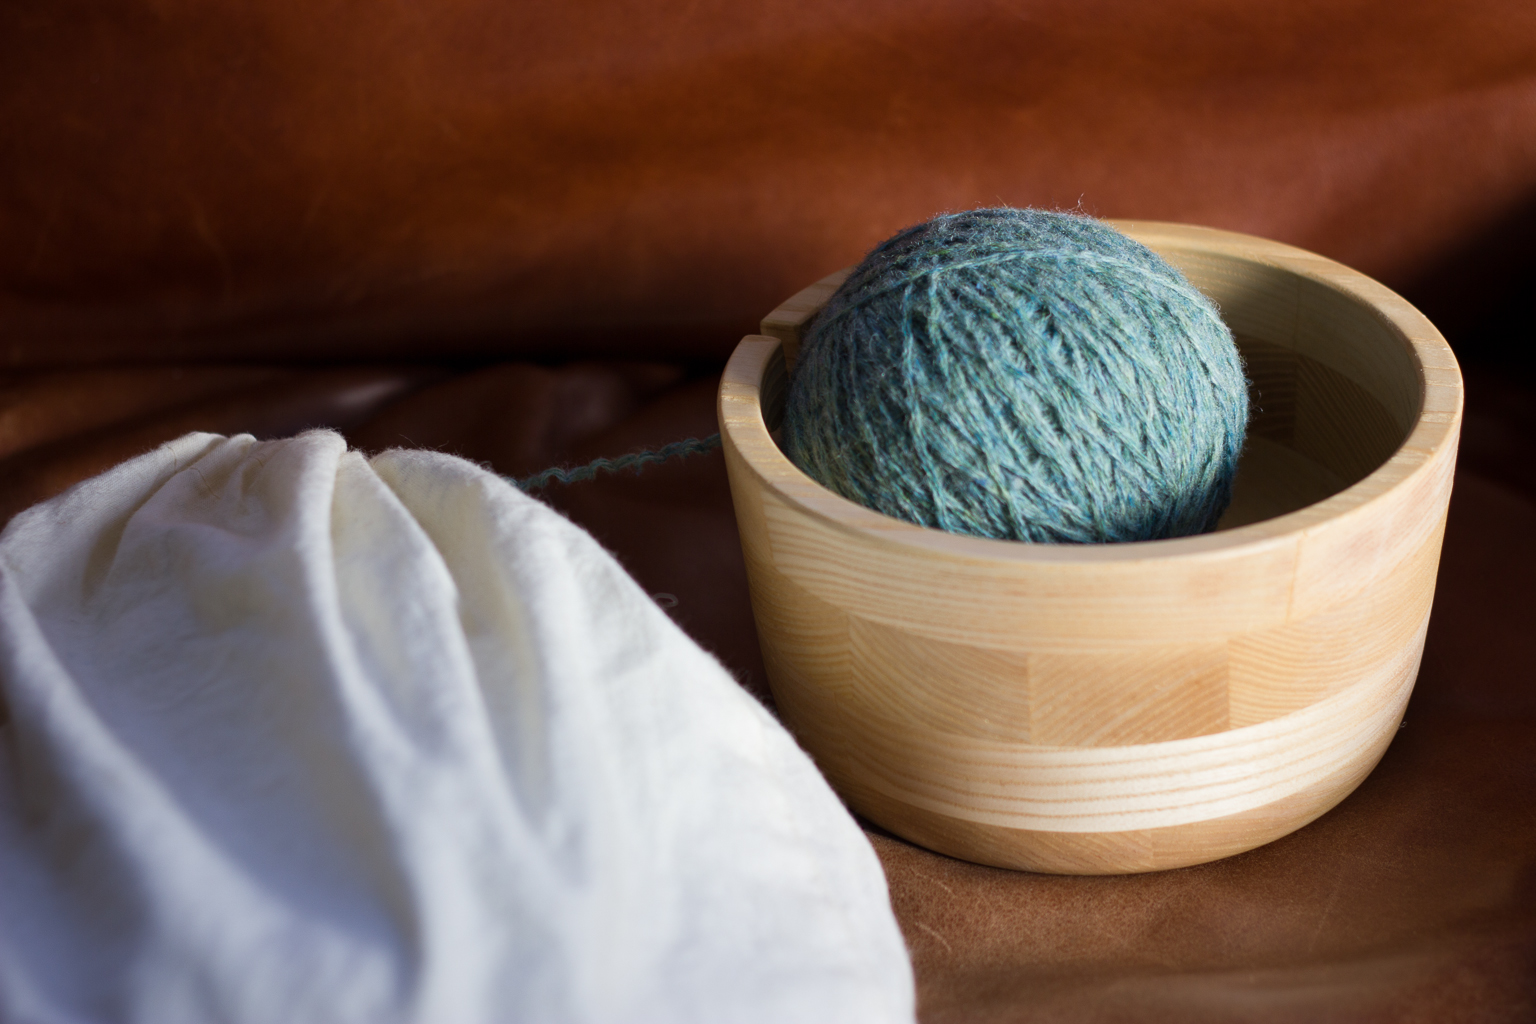 My yarn bowl: The perfect size at 6 by 2 3/4 inches.